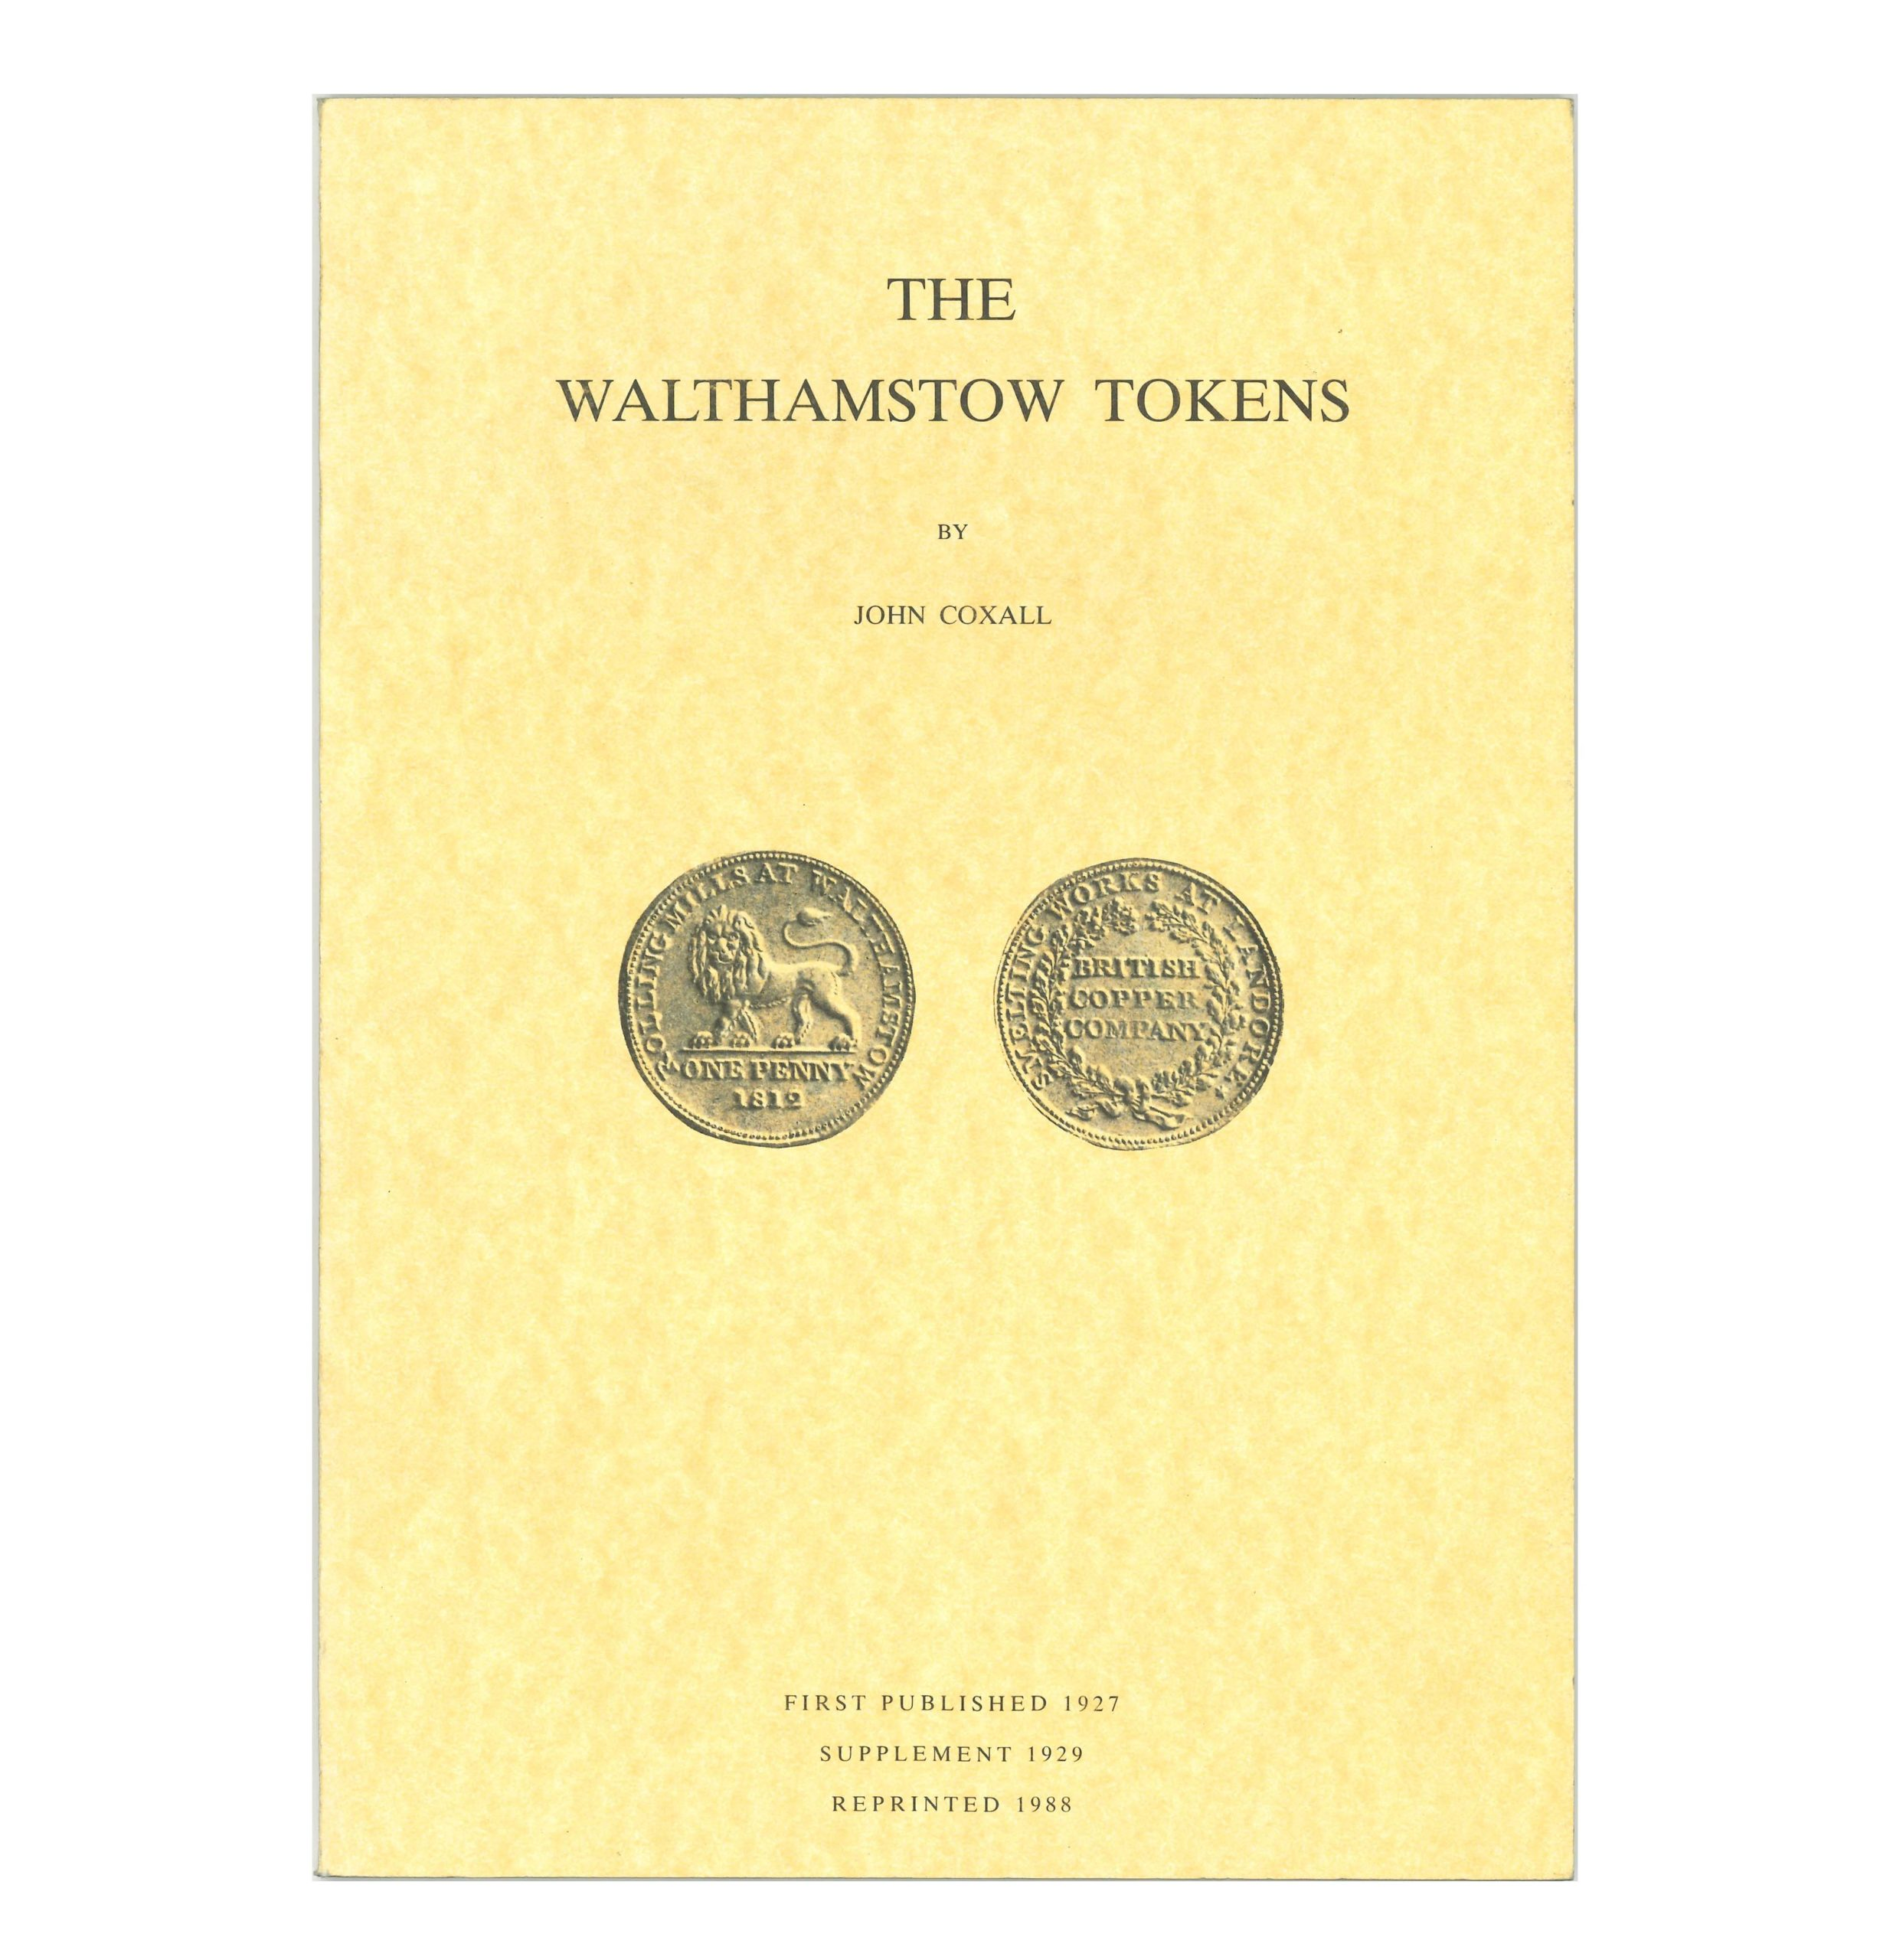 The Walthamstow Tokens